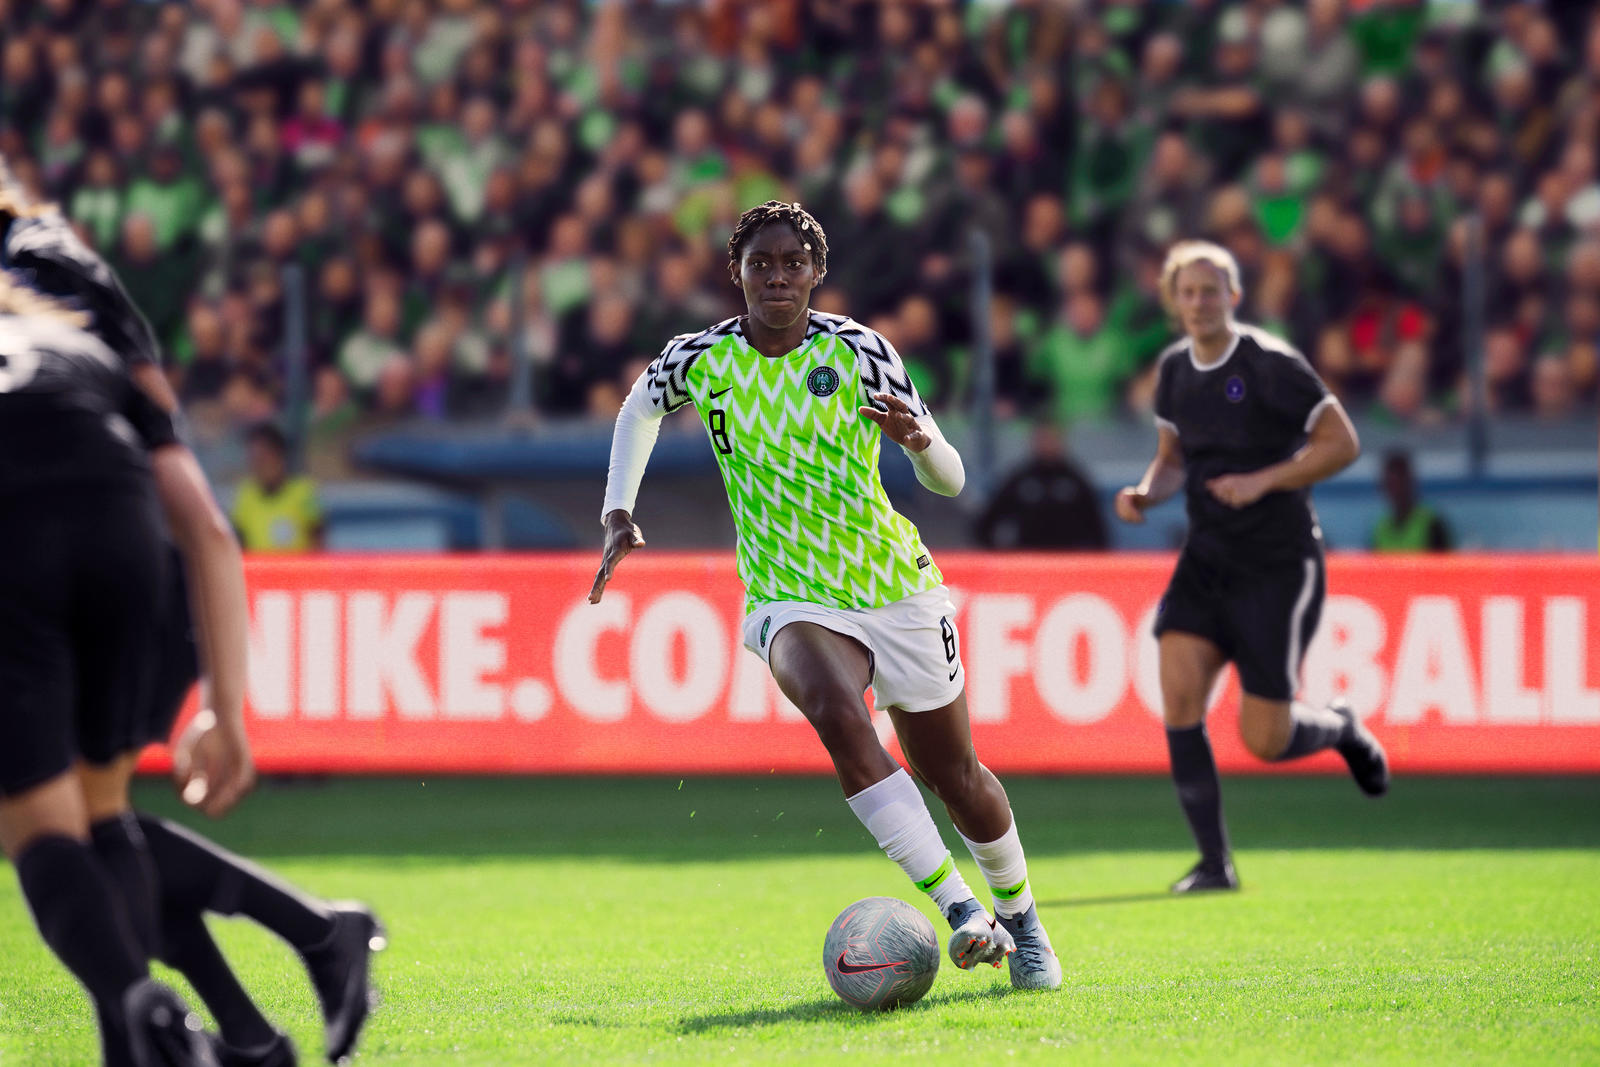 nigeria-national-team-kit-2019-performance-1_85959.jpg